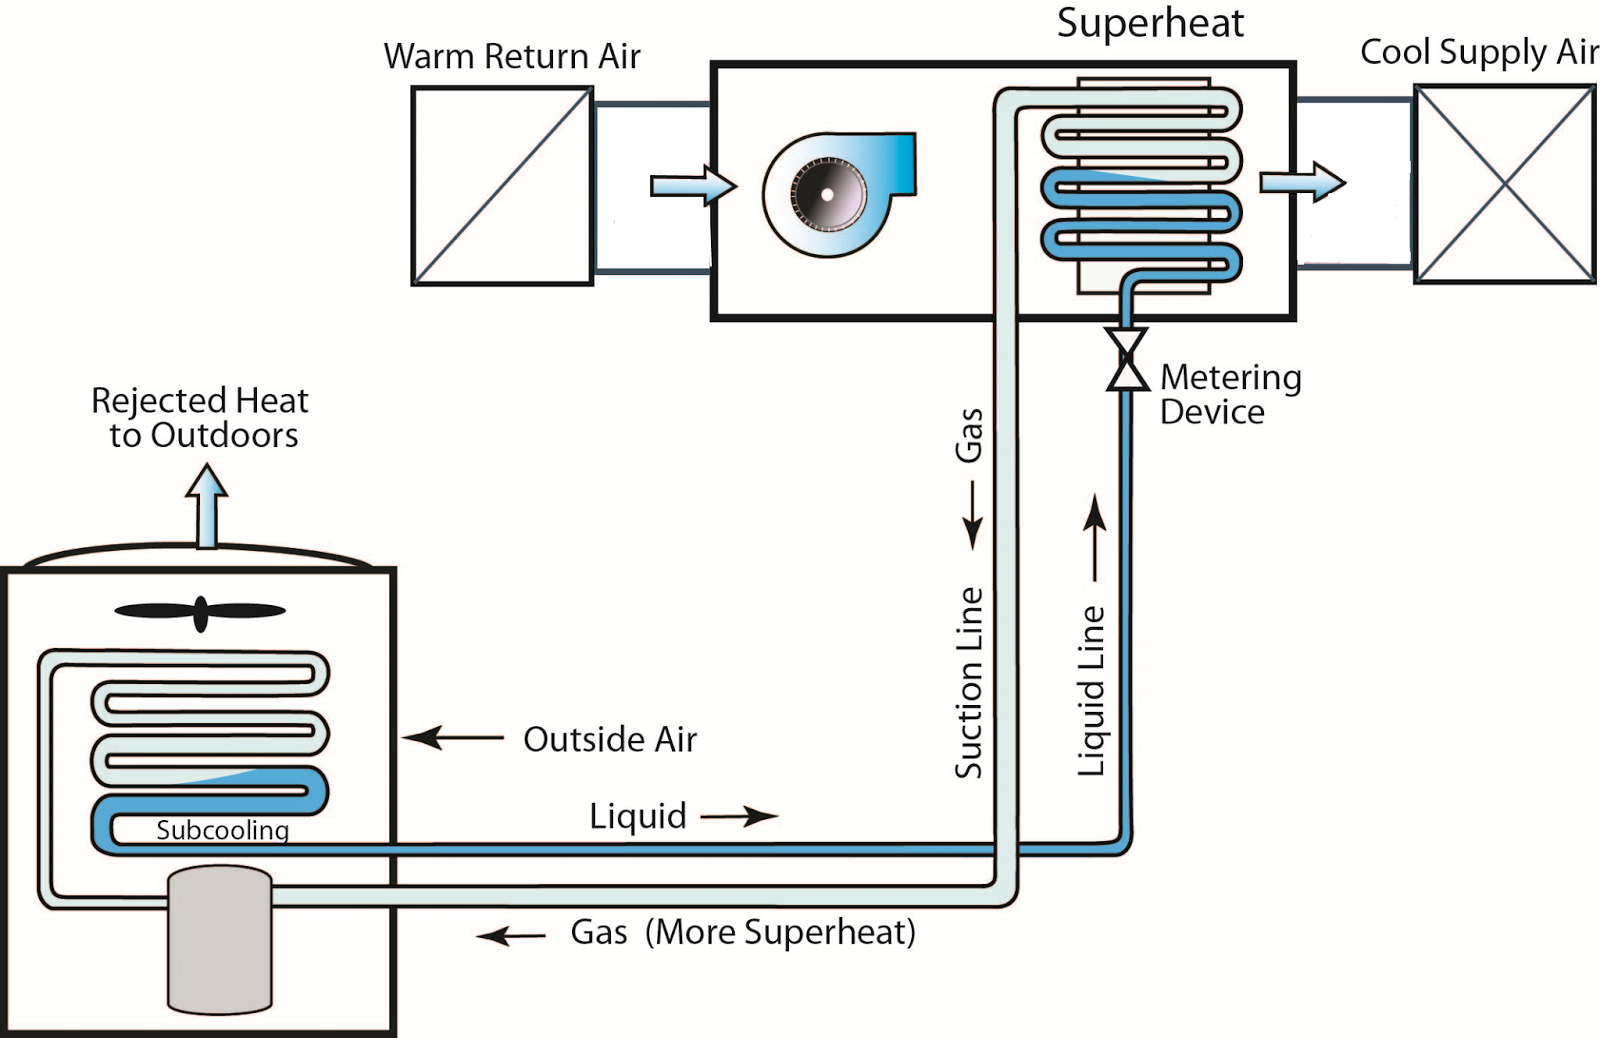 Hvac Systems new: Operation Of Hvac System